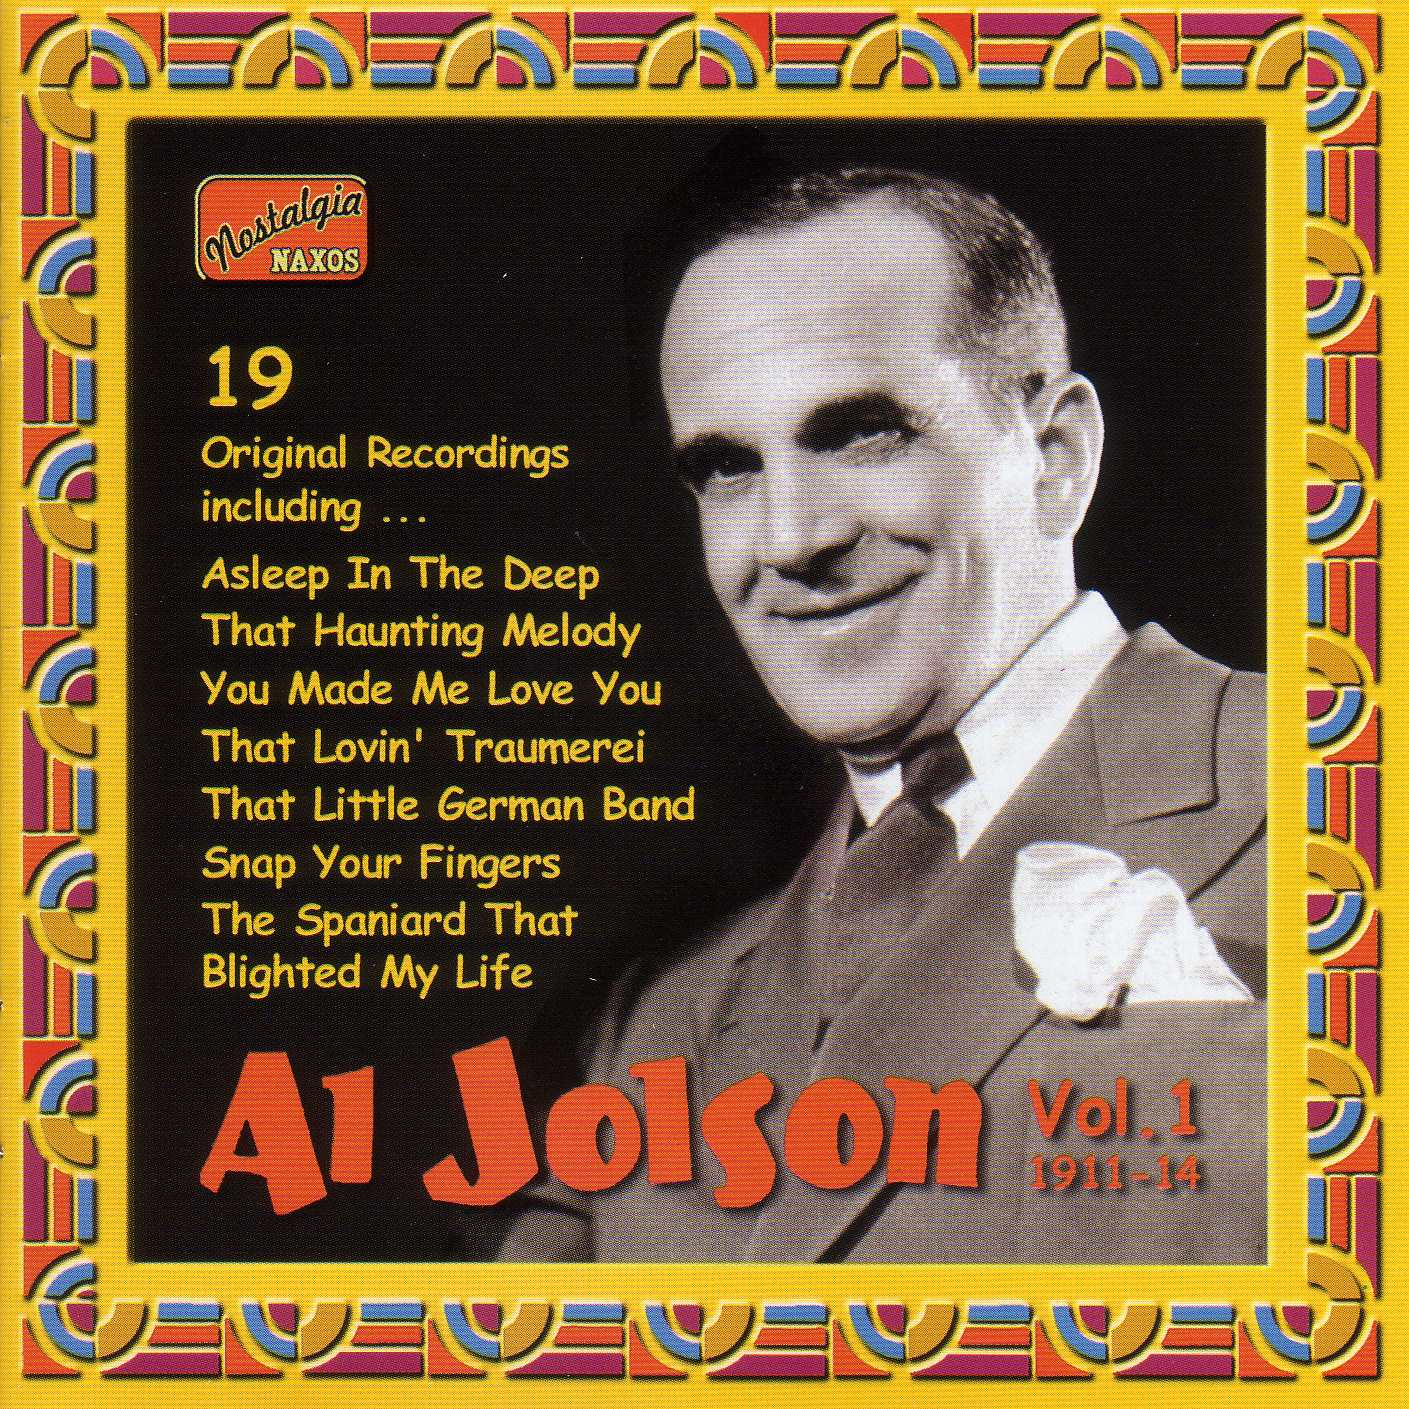 al jolson youtube